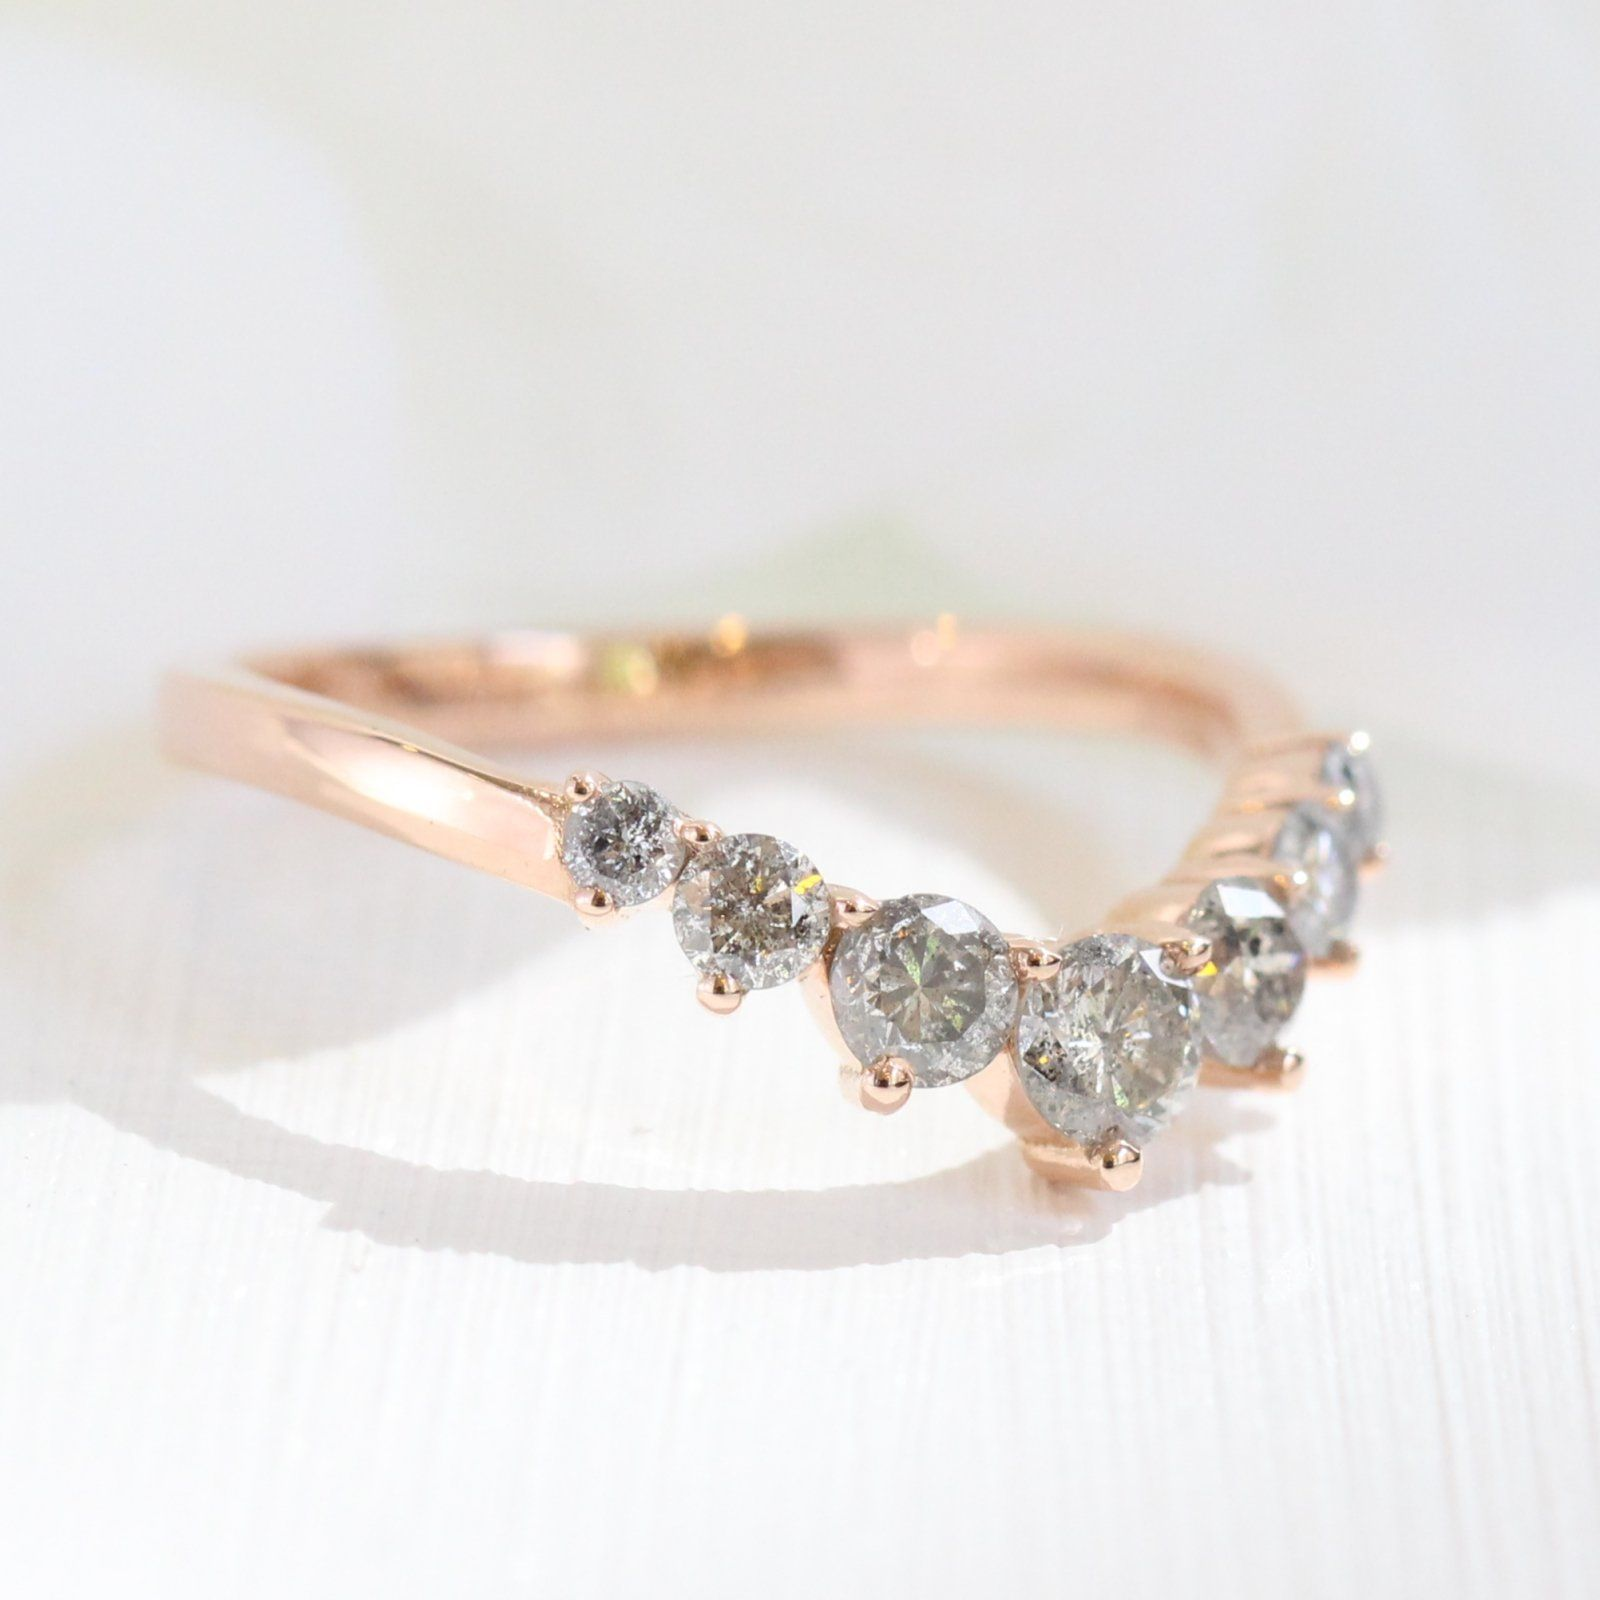 Large Grey Diamond 7 Stone Ring in Rose Gold Curved Band